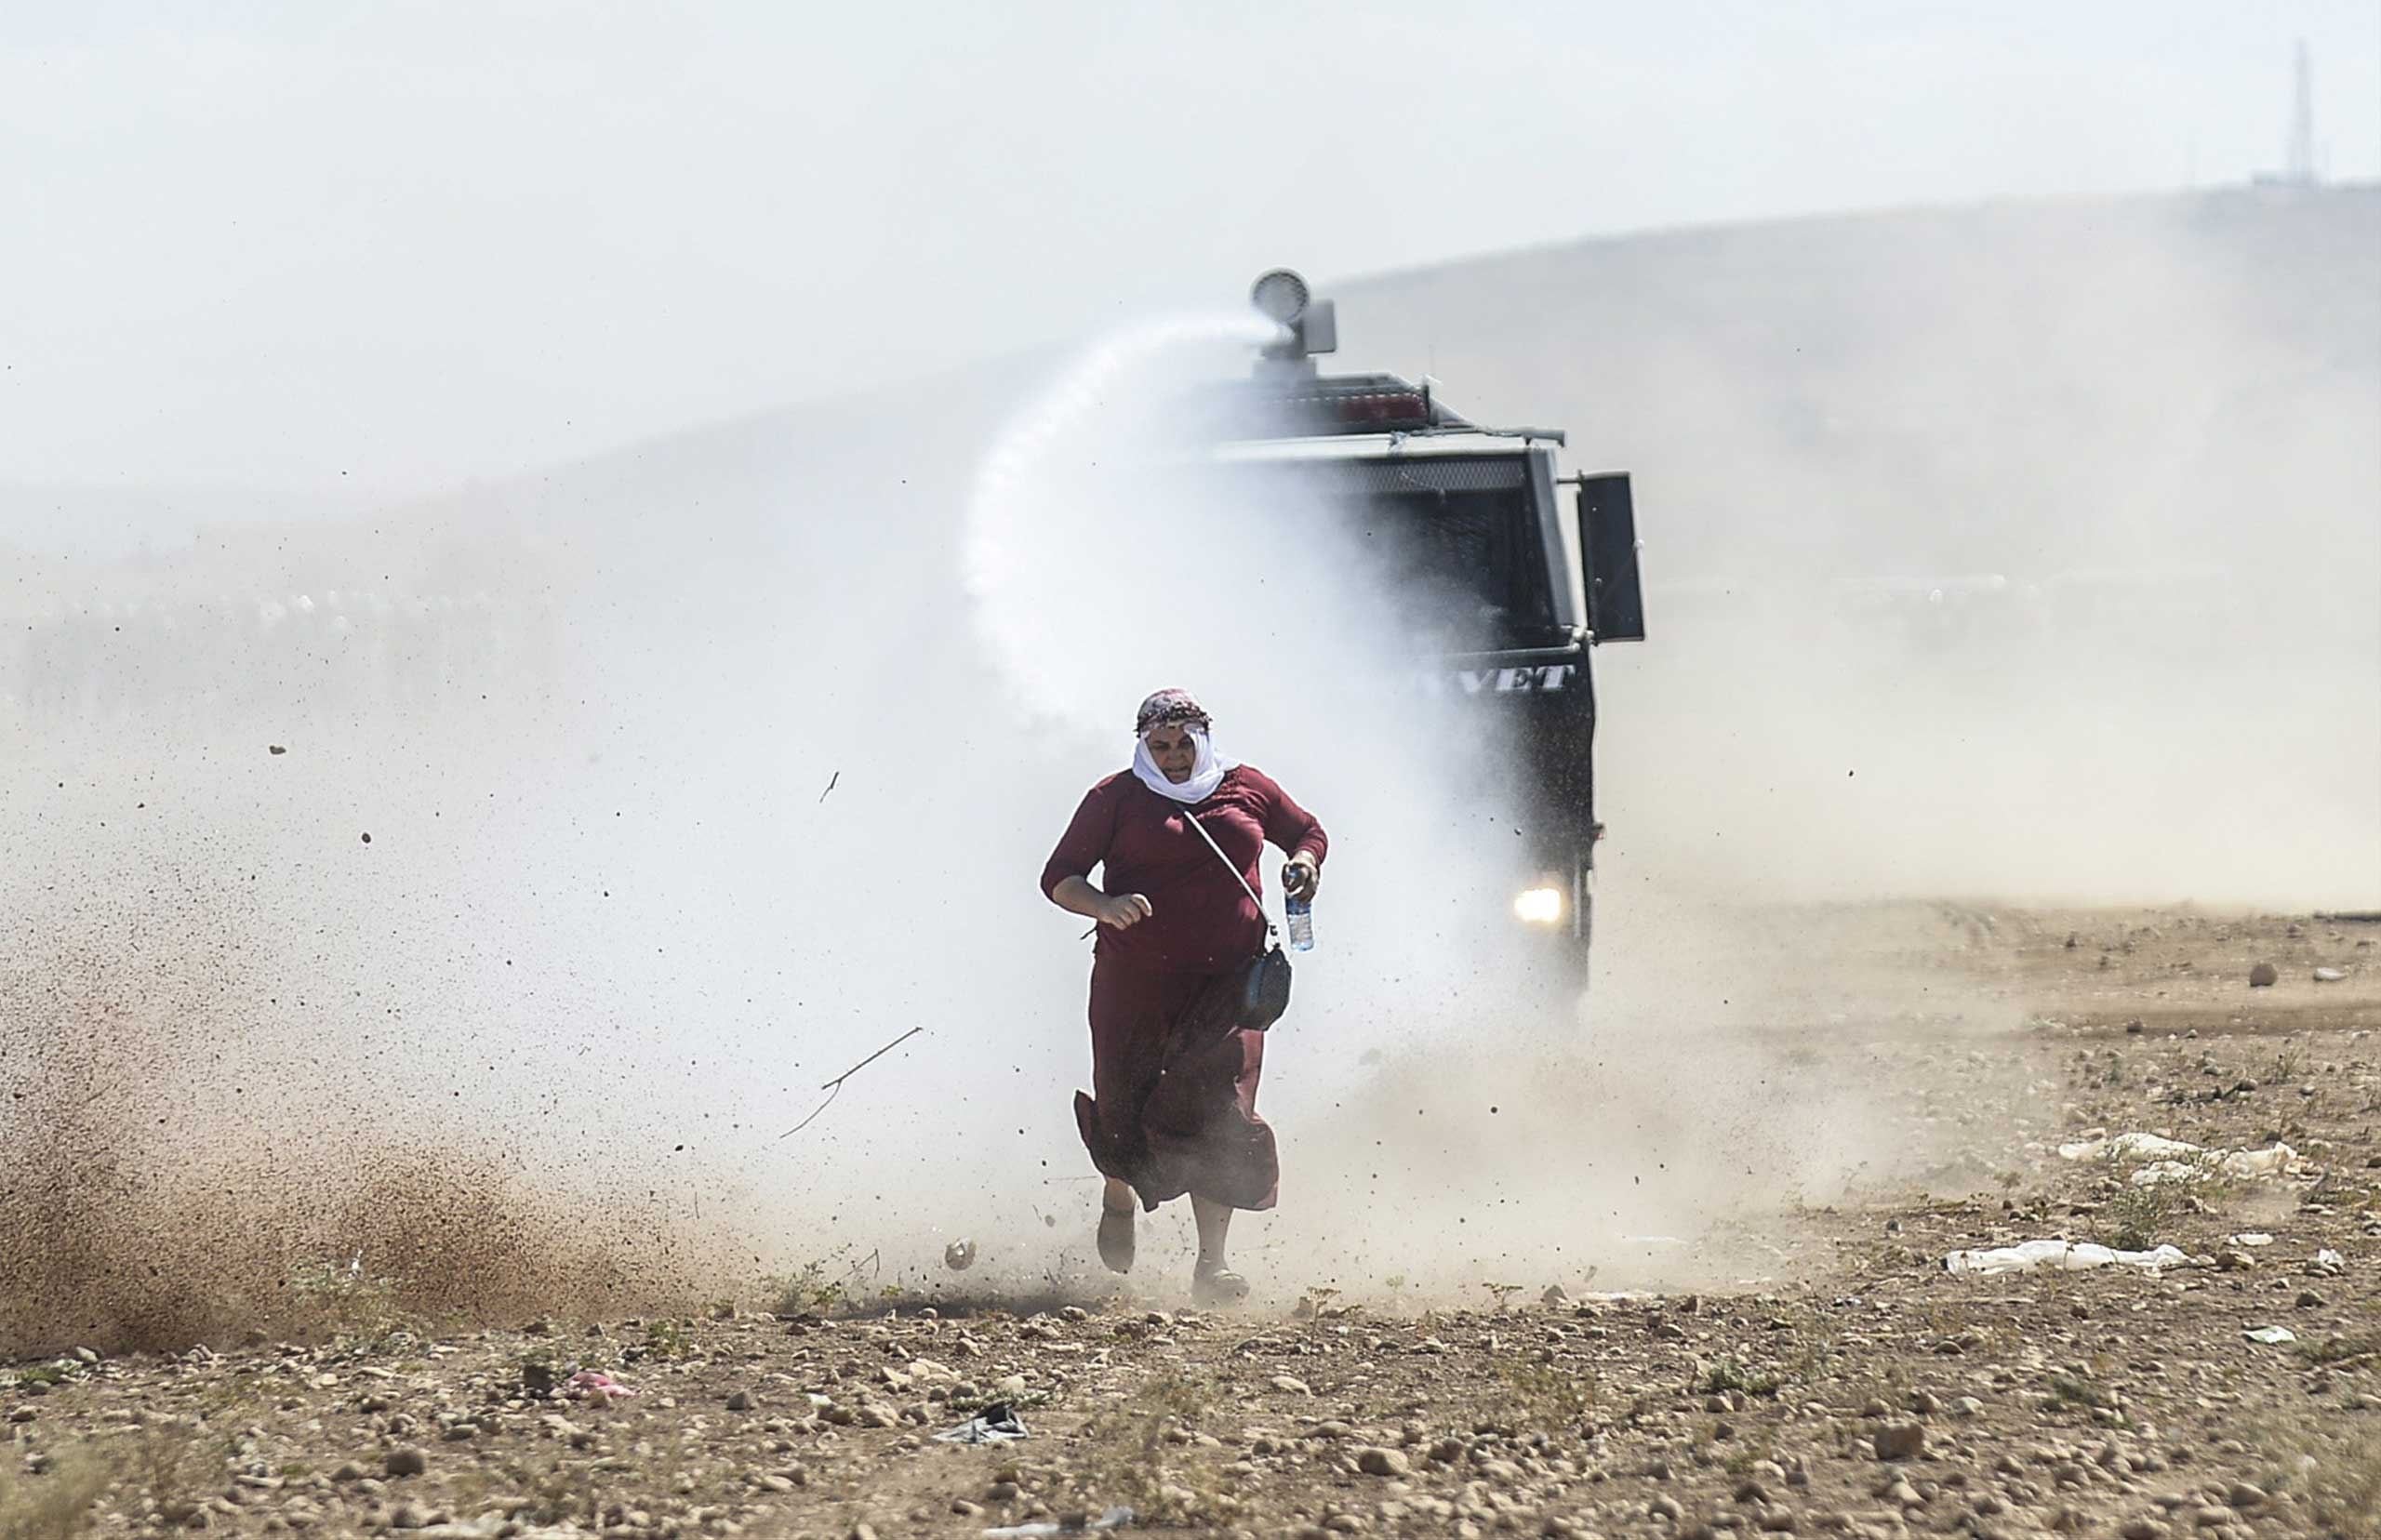 Sept. 22, 2014. A Kurdish woman runs away from a water cannon near the Syrian border after Turkish authorities temporarily closed the border at the southeastern town of Suruc in Sanliurfa province, Turkey.